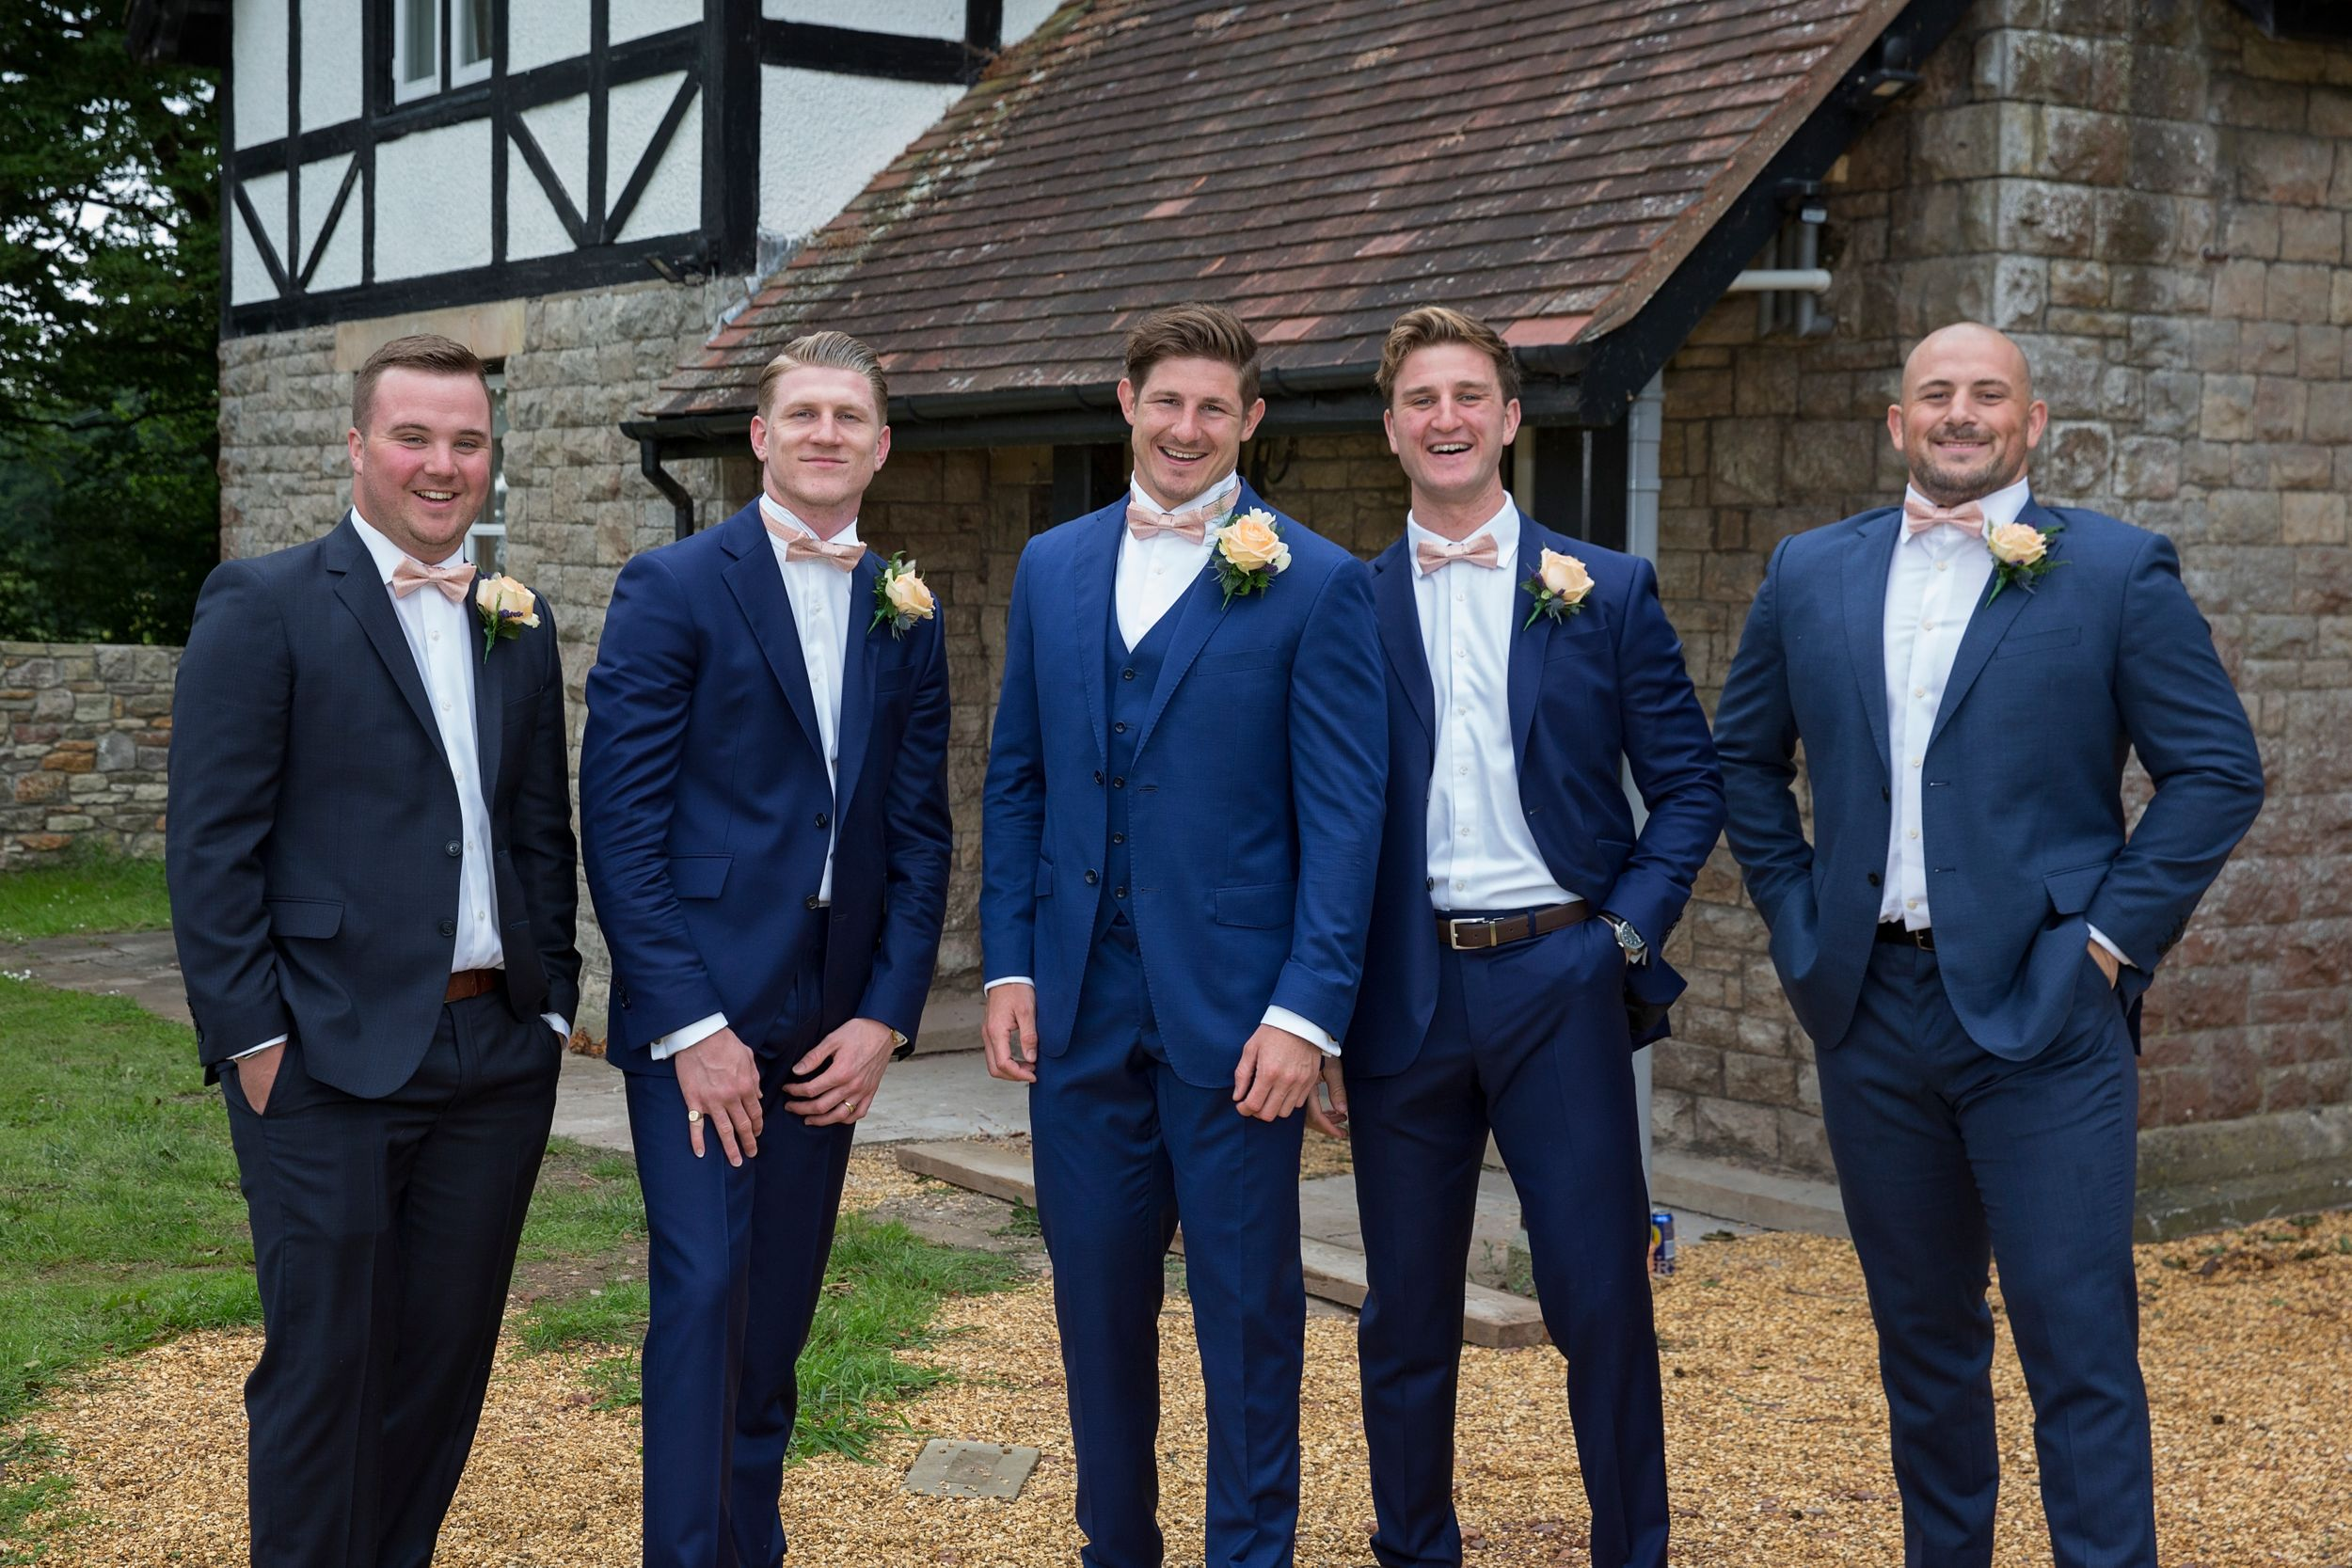 The Groom and groomsmen at Cottage at St Tewdrics House